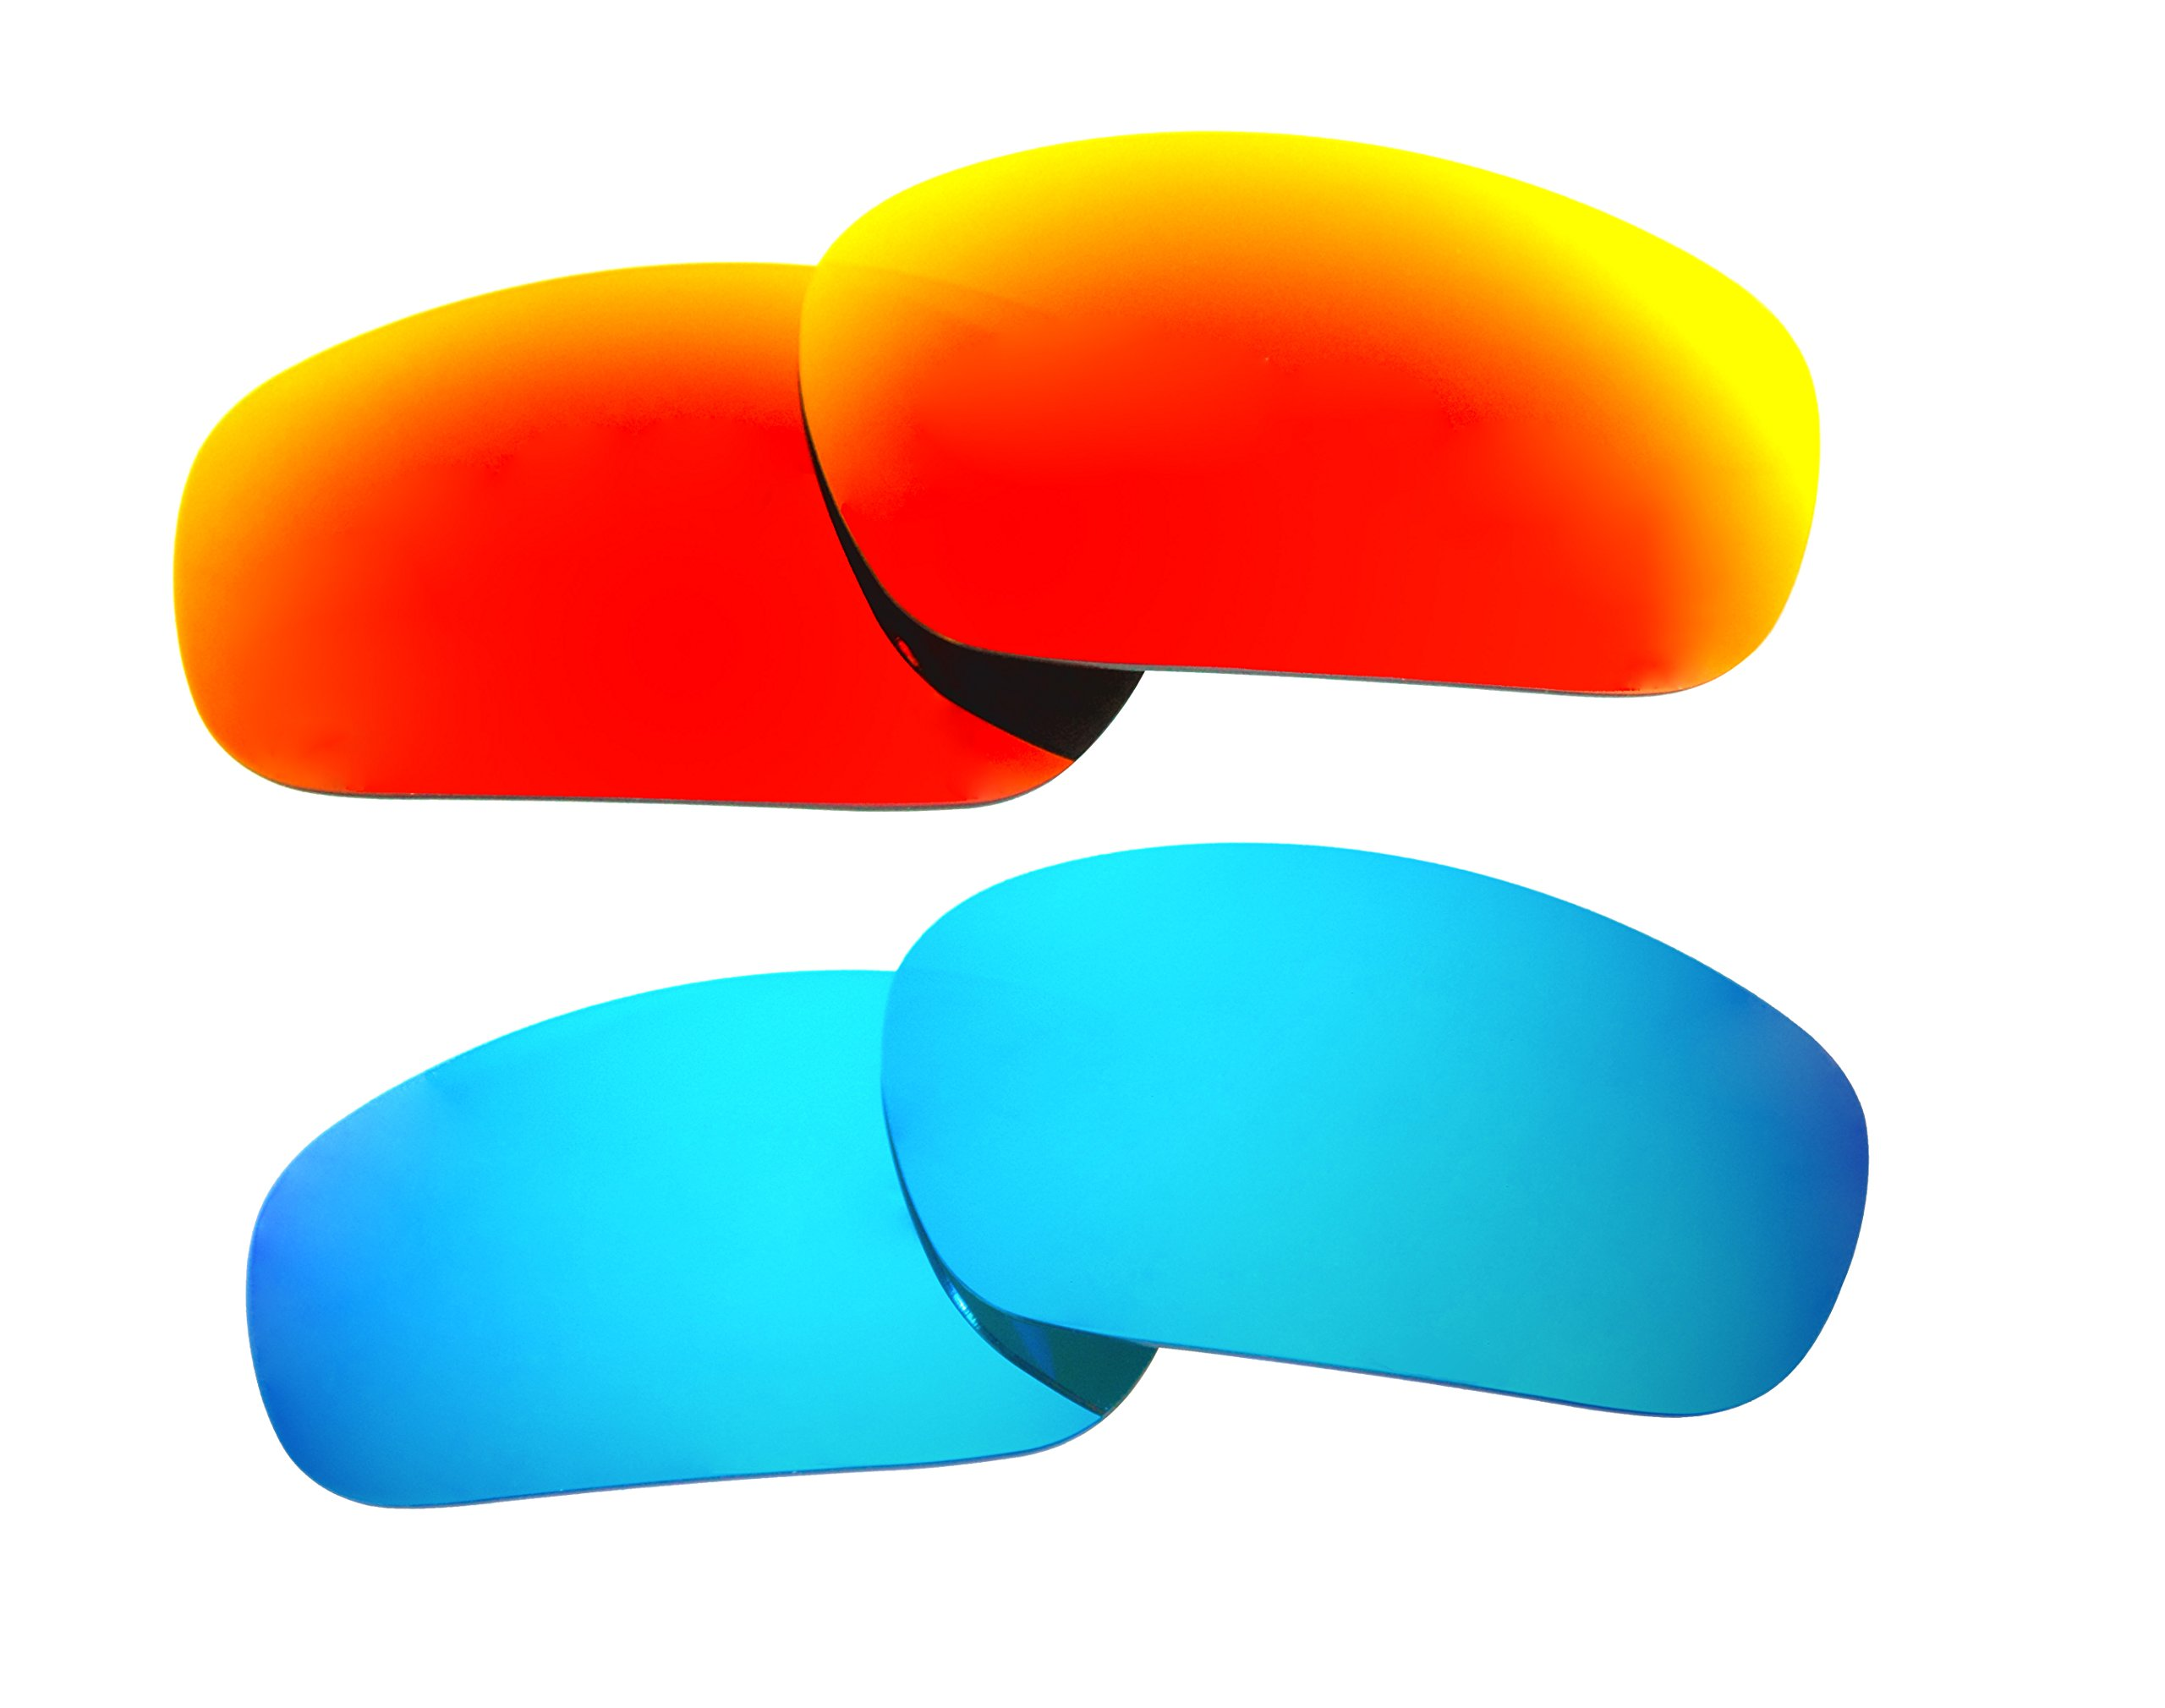 2 Pairs Polarized Replacement Sunglasses Lenses for Oakley Jawbone with UV Protection(Ice Blue and Fire Red Mirror)